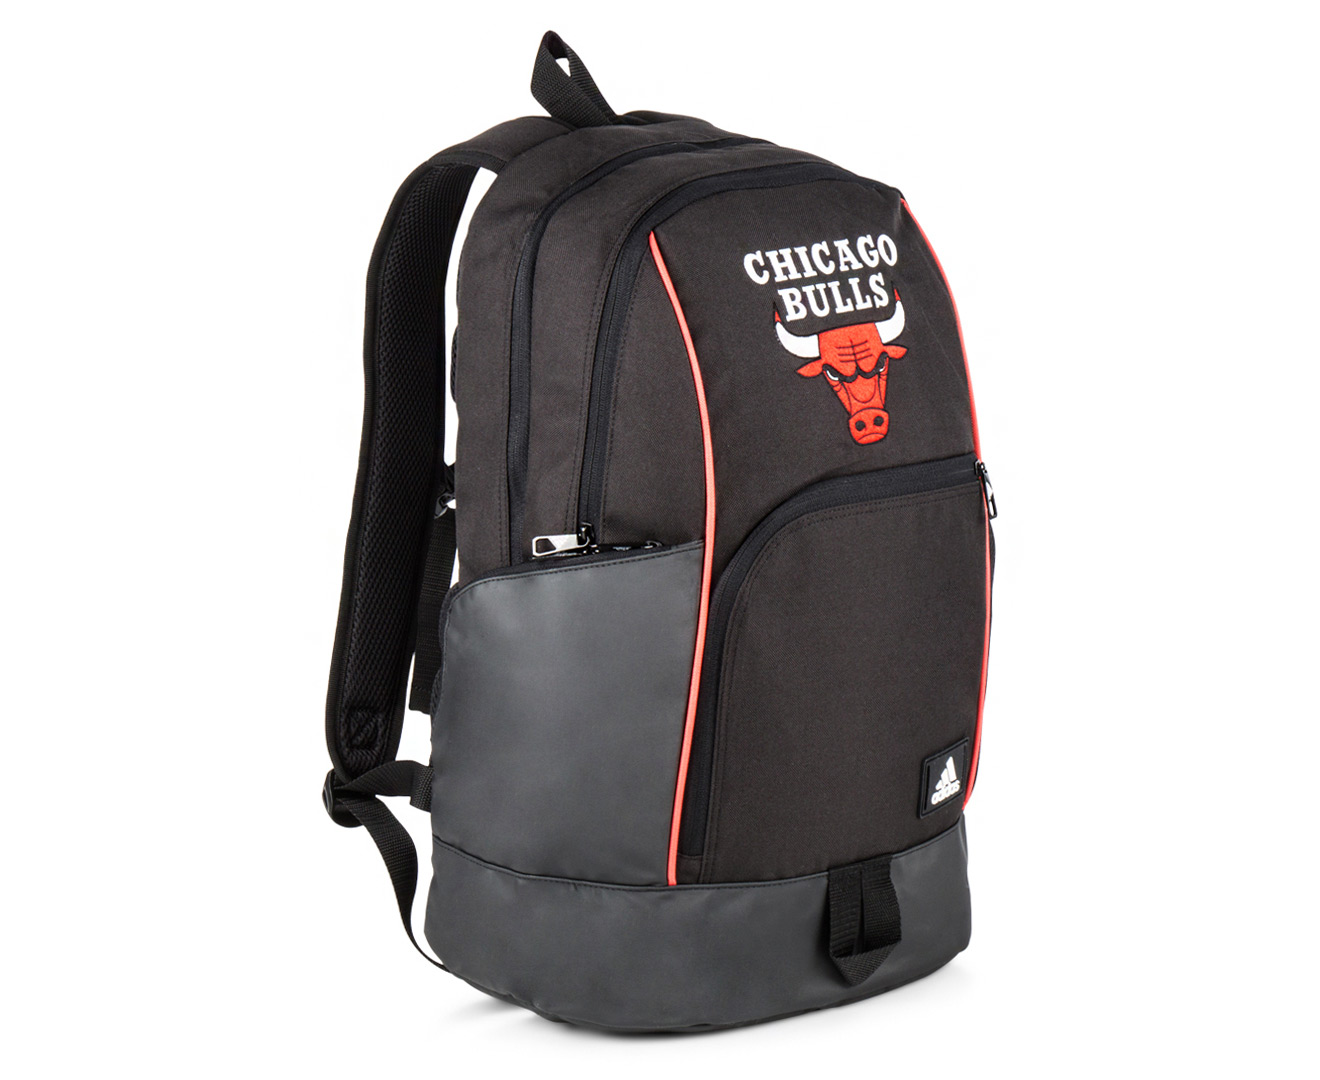 Adidas Chicago Bulls Backpack - Black Black Reflective Bright Red ... 80409ea39